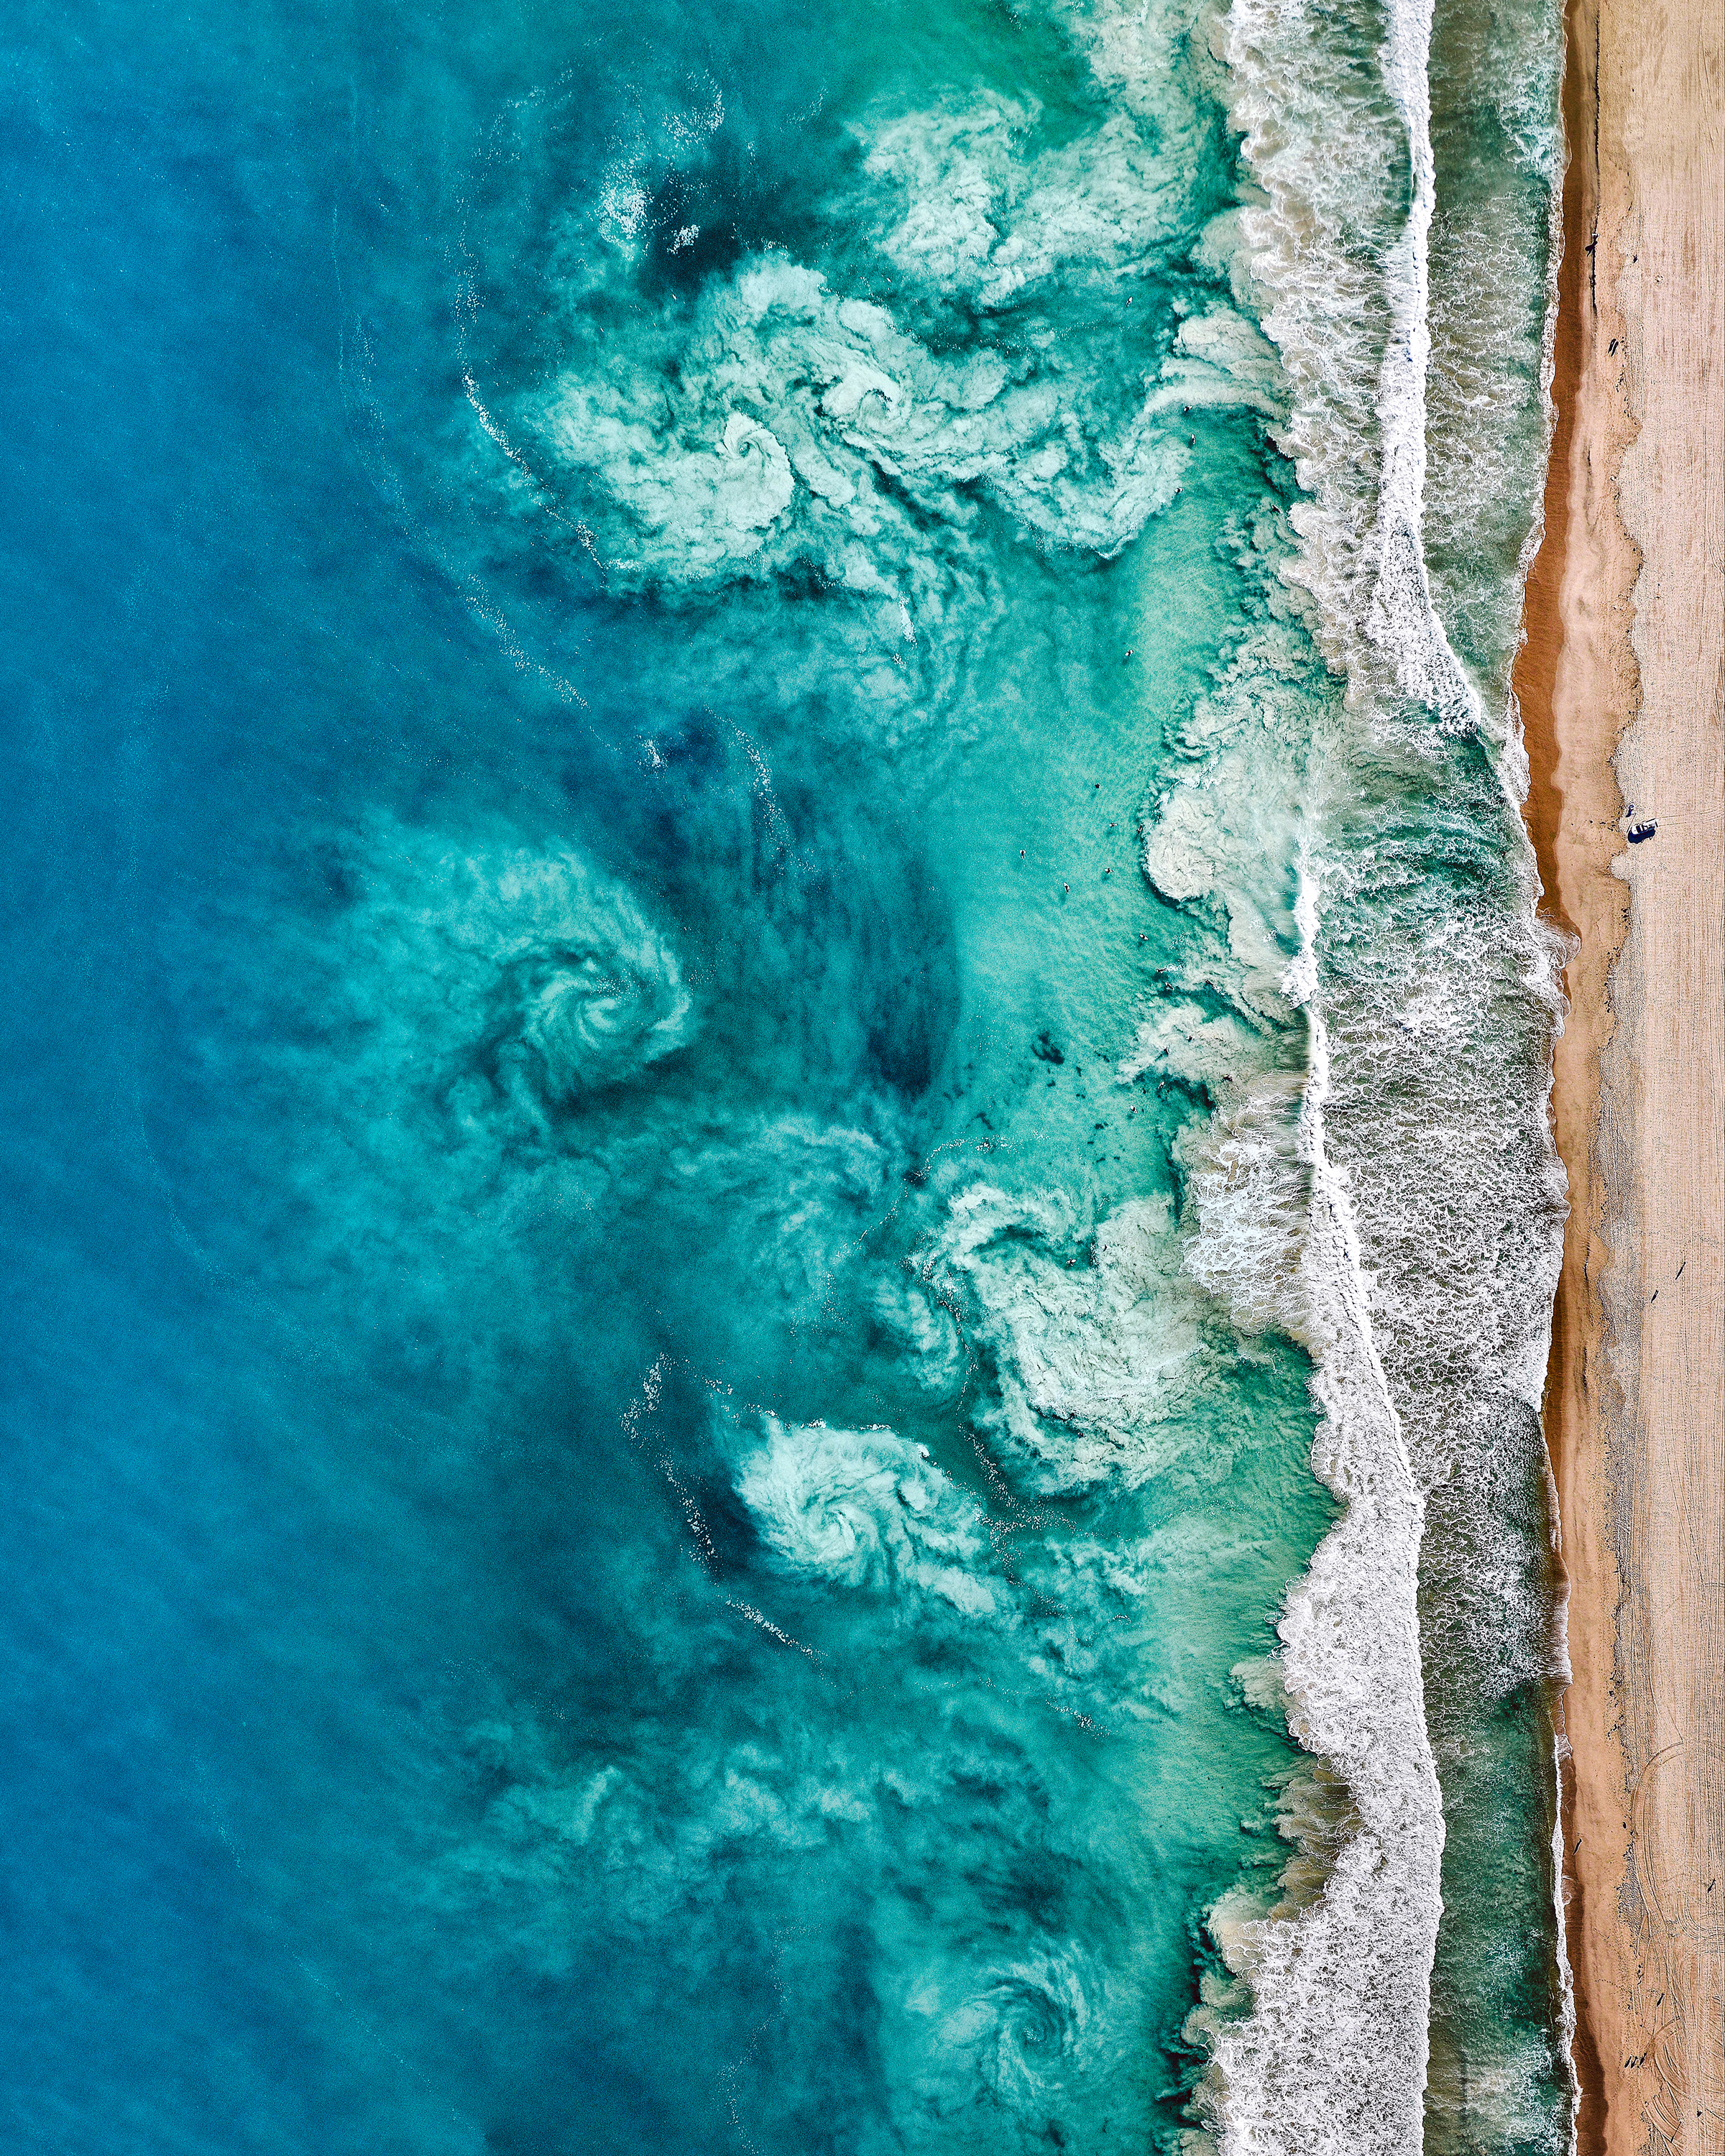 """With just hours left in 2018, we're sharing one more of our favorite Overviews created this year. This amazing shot shows swirling waves offshore Perth, Australia. The beaches in Perth are world-famous for their beautiful white sand and clear blue water. A sincere thank you to everyone who shared an image, purchased a print or a copy of """"Overview,"""" or simply followed along in 2018. Happy New Year!  31°57'04.5""""S, 115°45'14.9""""E  Source imagery: Nearmap"""